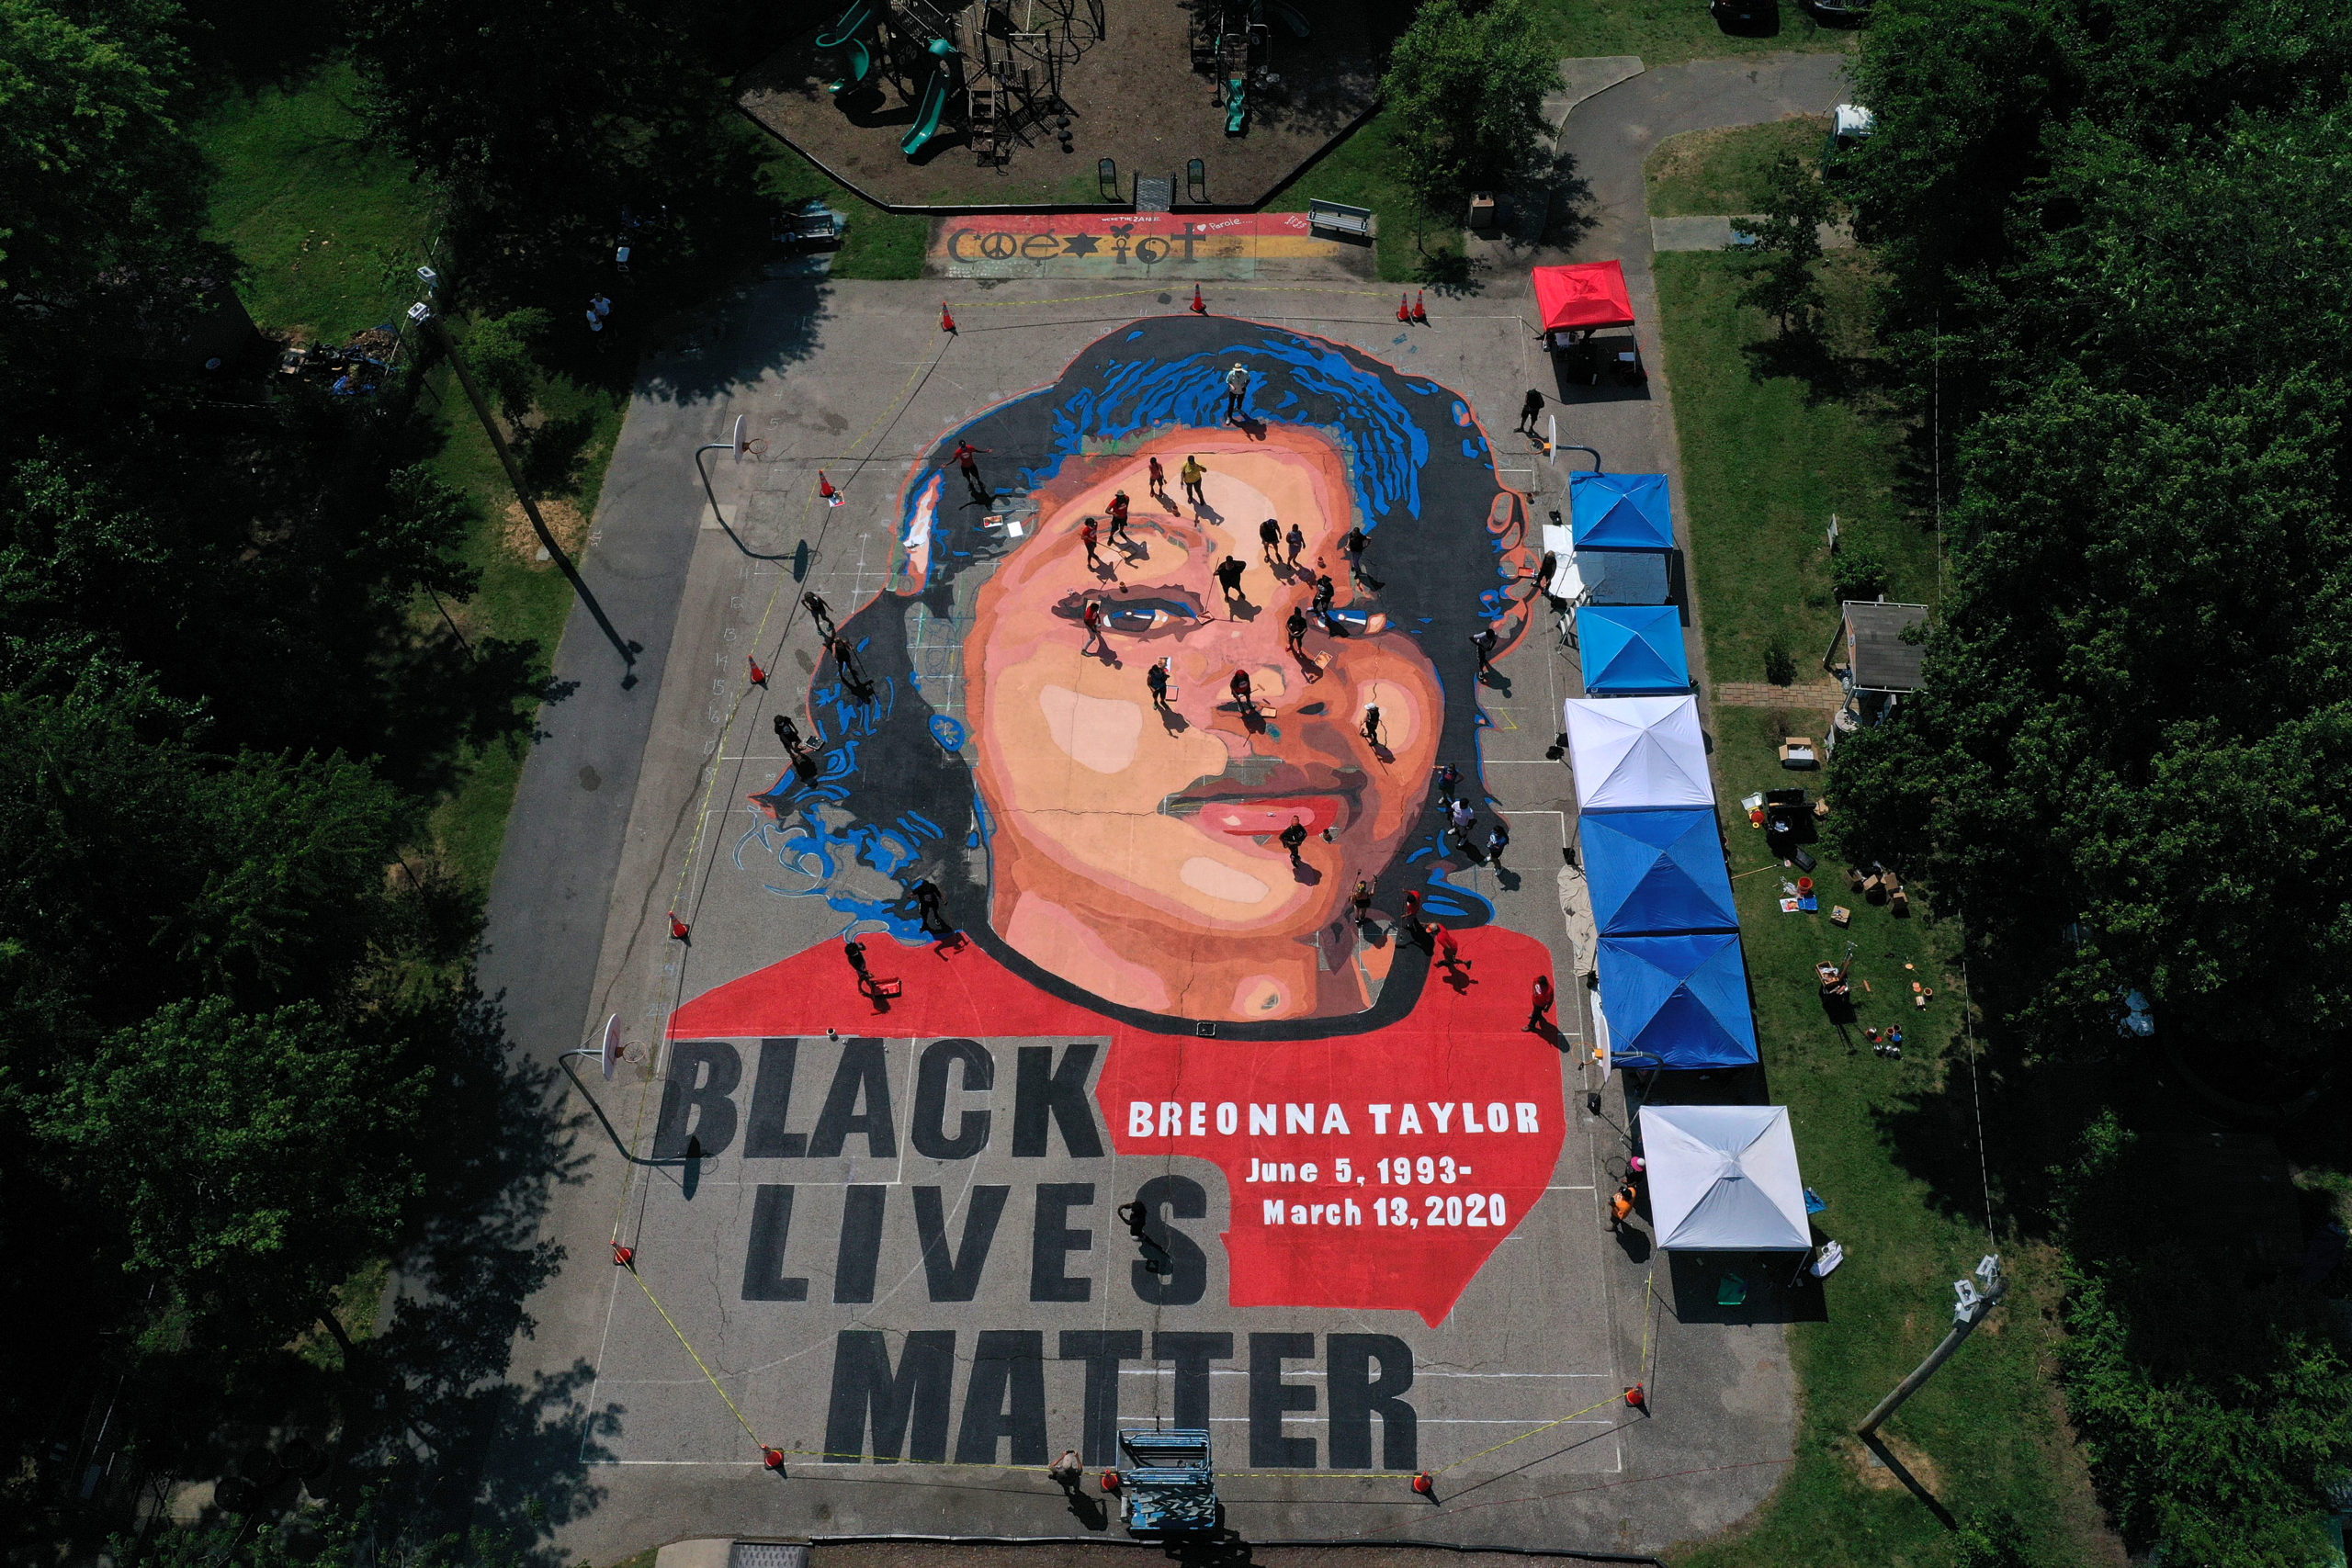 ANNAPOLIS, MARYLAND - JULY 05: In an aerial view from a drone, a large-scale ground mural depicting Breonna Taylor with the text 'Black Lives Matter' is seen being painted at Chambers Park on July 5, 2020 in Annapolis, Maryland. The mural was organized by Future History Now in partnership with Banneker-Douglass Museum and The Maryland Commission on African American History and Culture. The painting honors Breonna Taylor, who was shot and killed by members of the Louisville Metro Police Department in March 2020. (Photo by Patrick Smith/Getty Images)